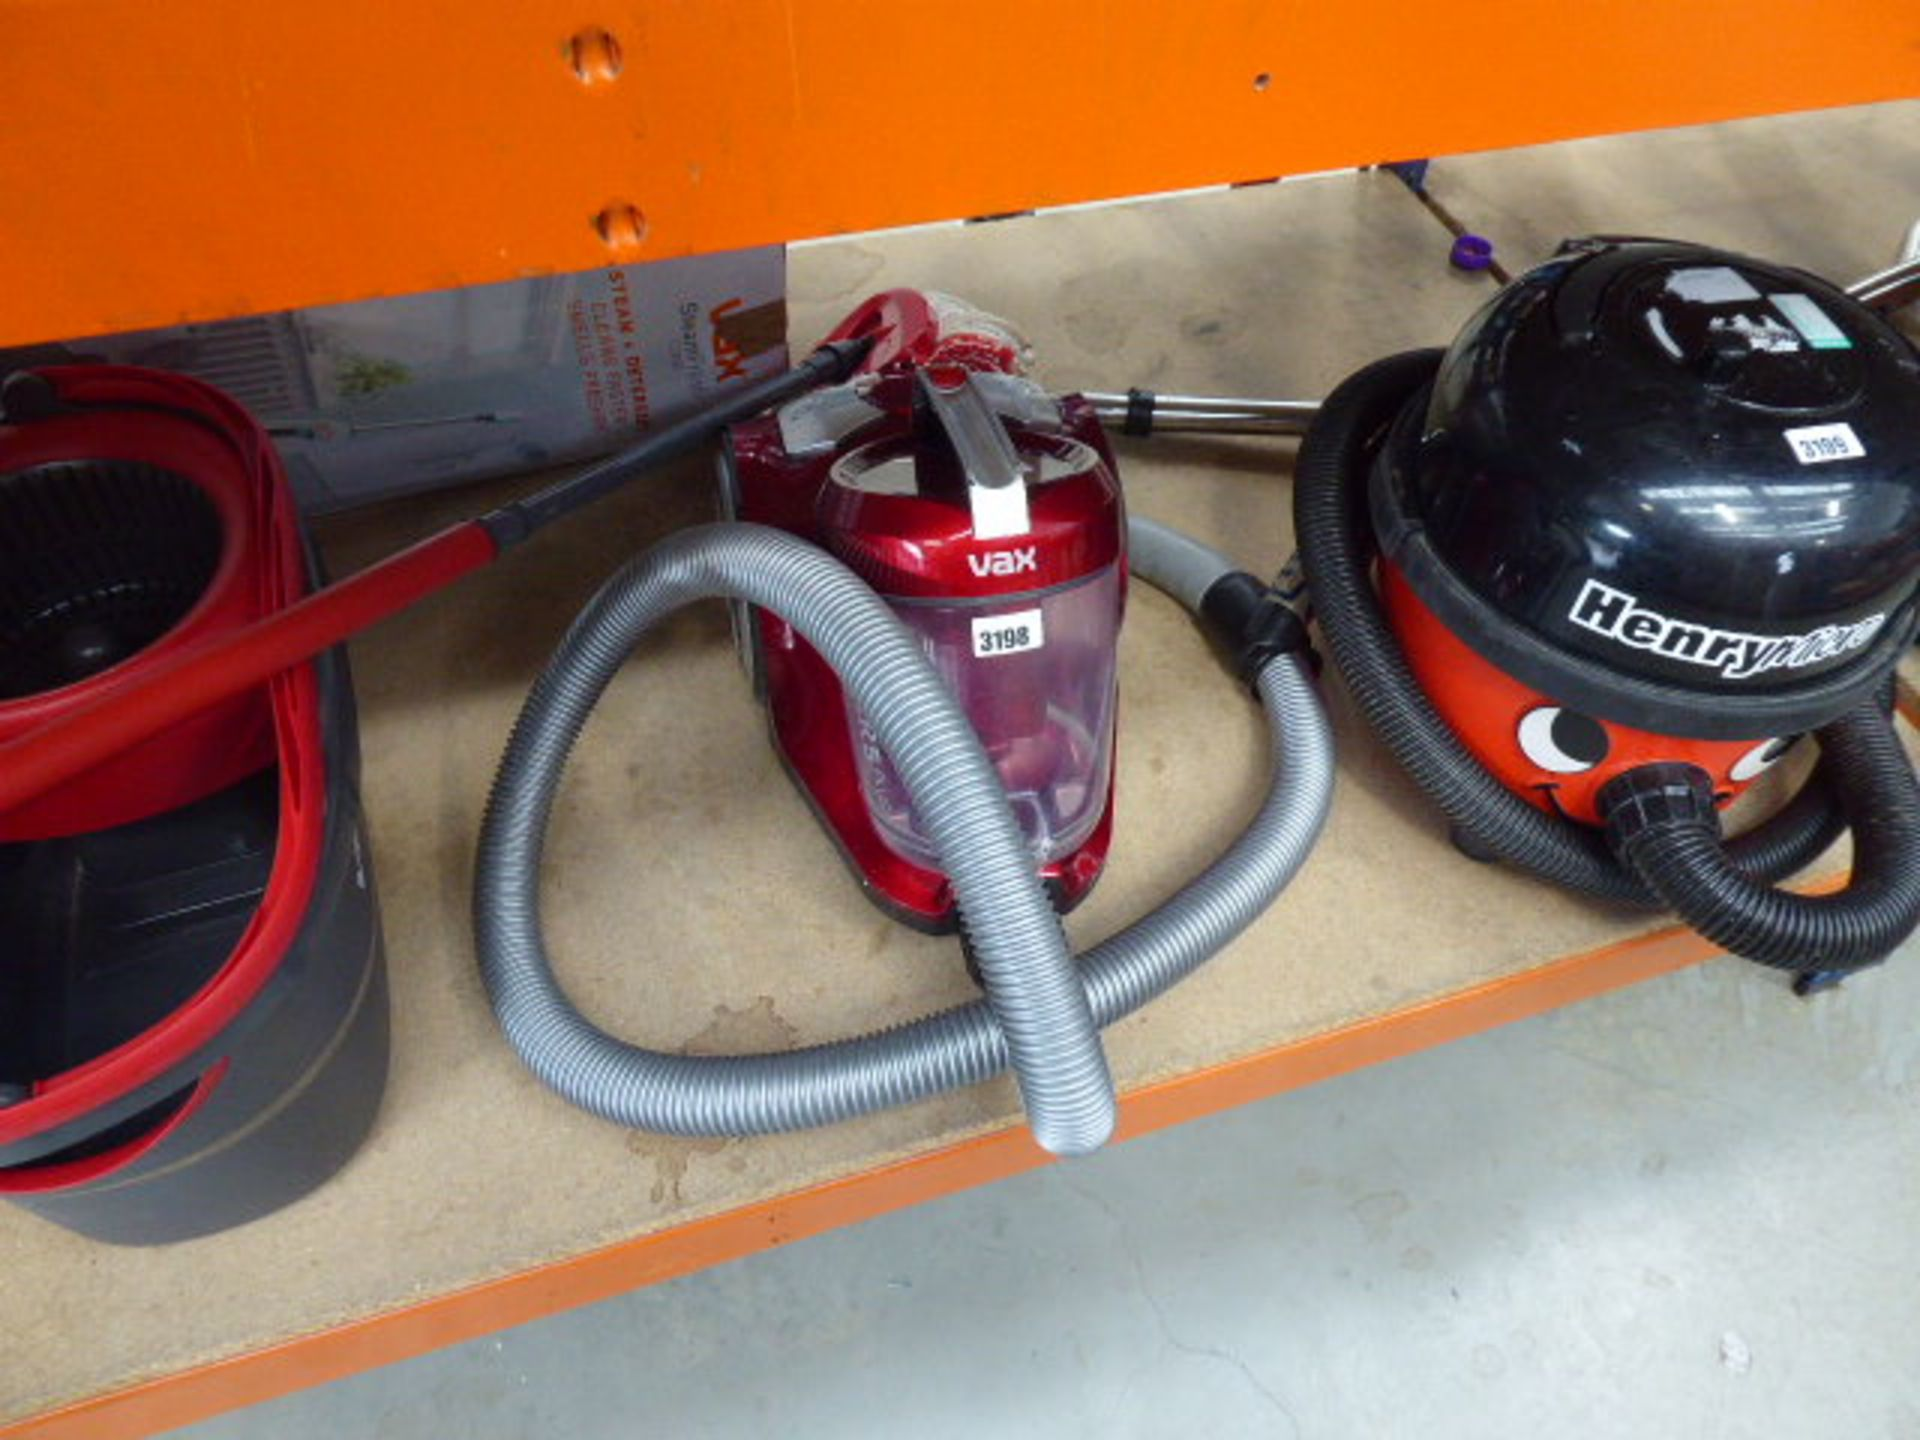 Lot 3198 - Tug along Vax vacuum cleaner no pole or accessories